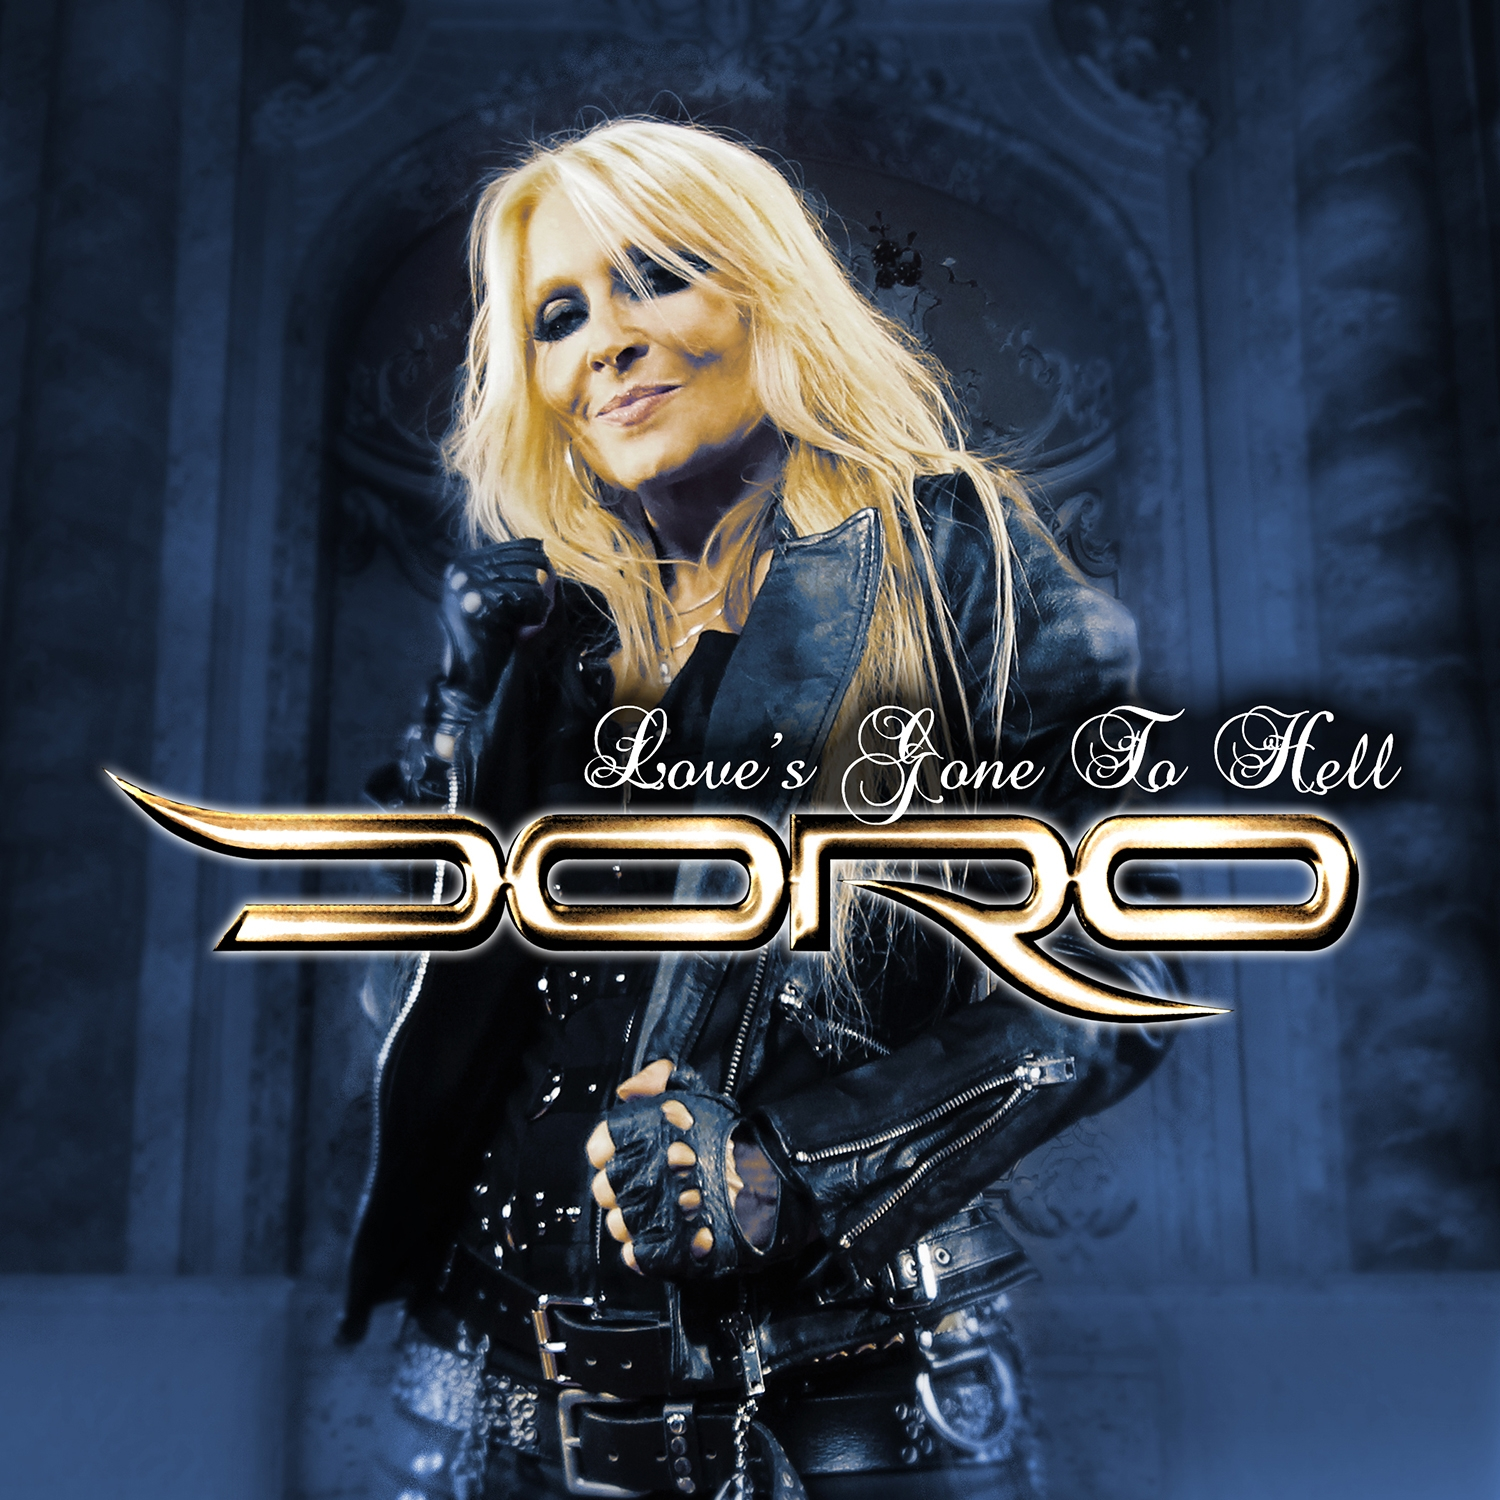 Doro - Love's Gone To Hell - Artwork